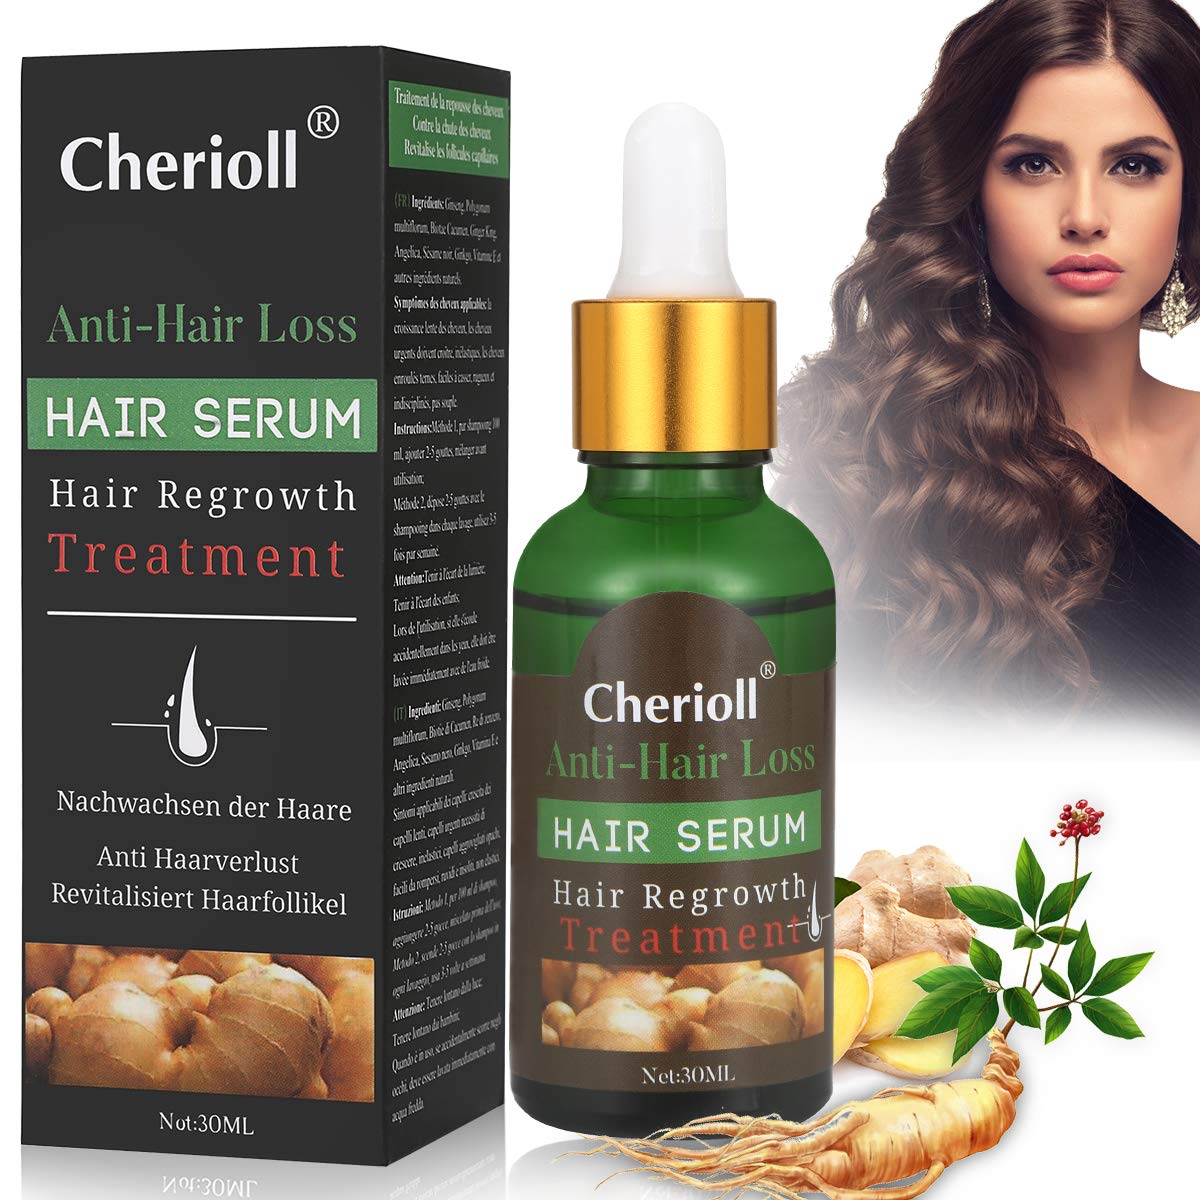 Hair Growth Serum, Hair Loss and Hair Thinning Treatment, Stops Hair Loss, Thinning, Balding, Repairs Hair Follicles, Promotes Thicker, Stronger Hair and New Hair Growth by Cherioll